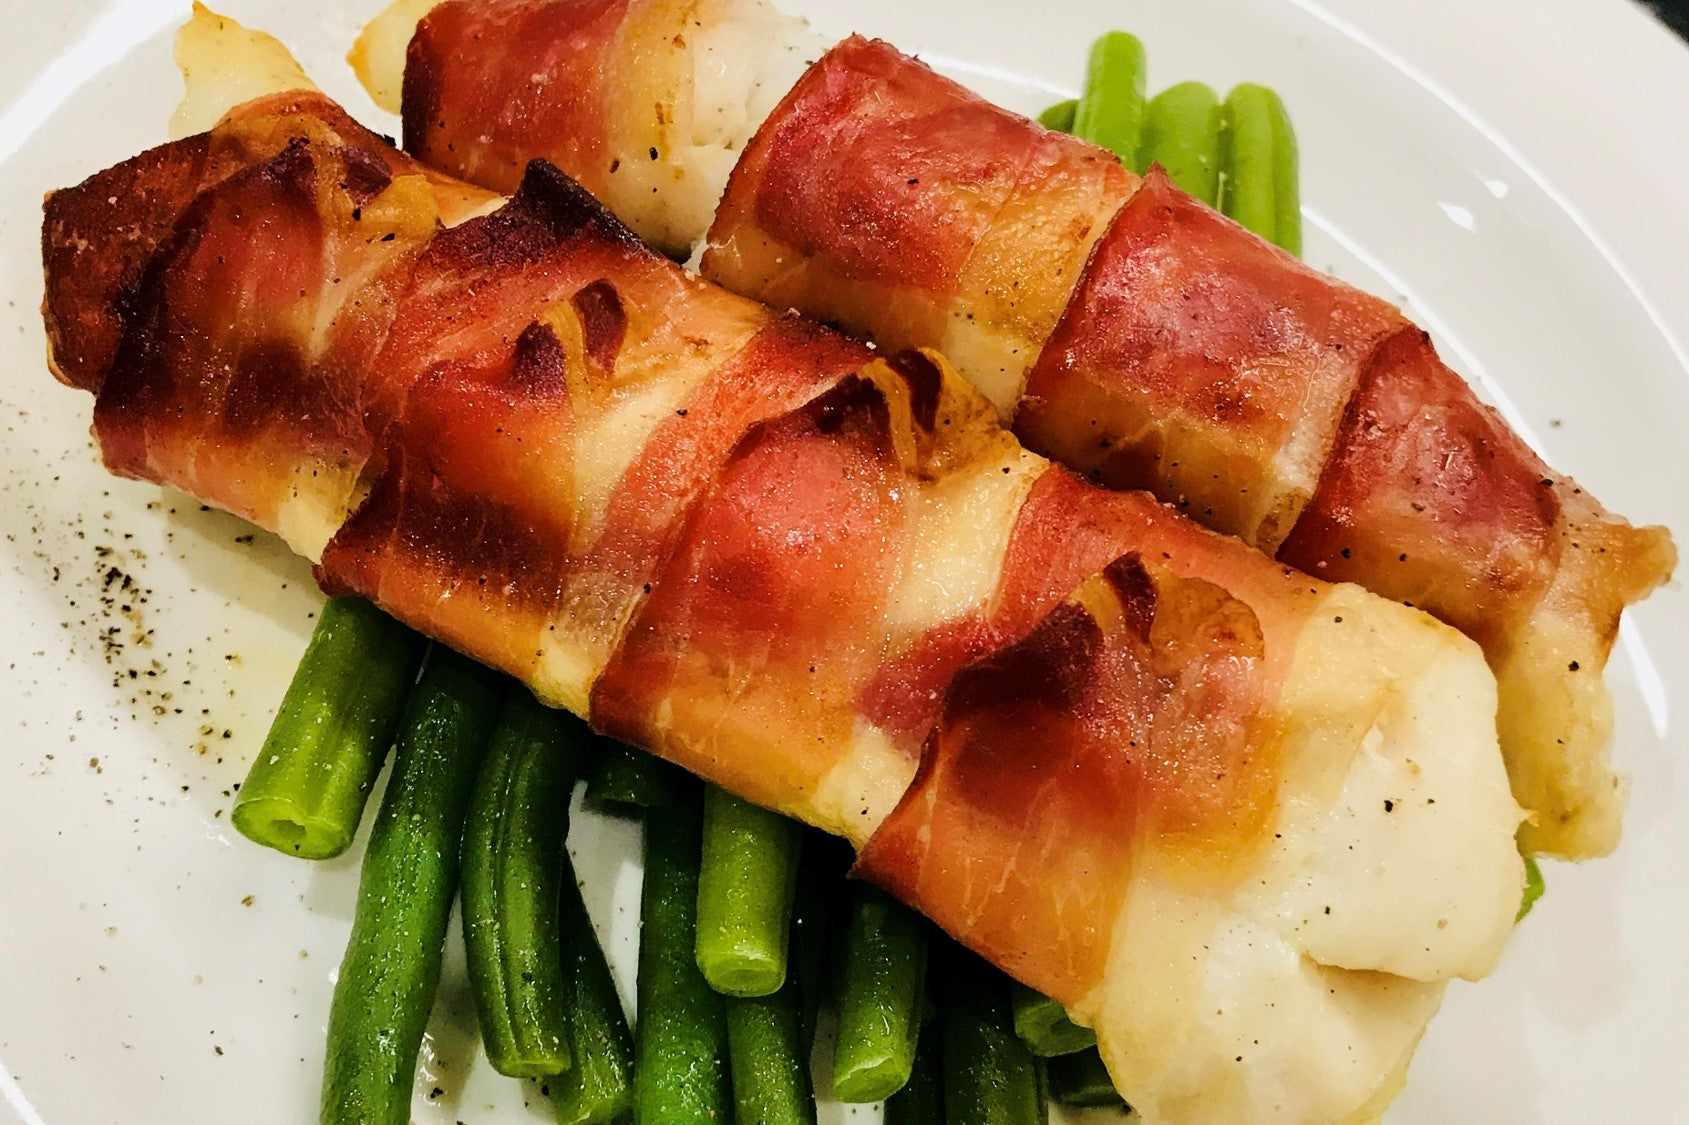 Cod fillets wrapped in Black Combe Ham with buttered greens